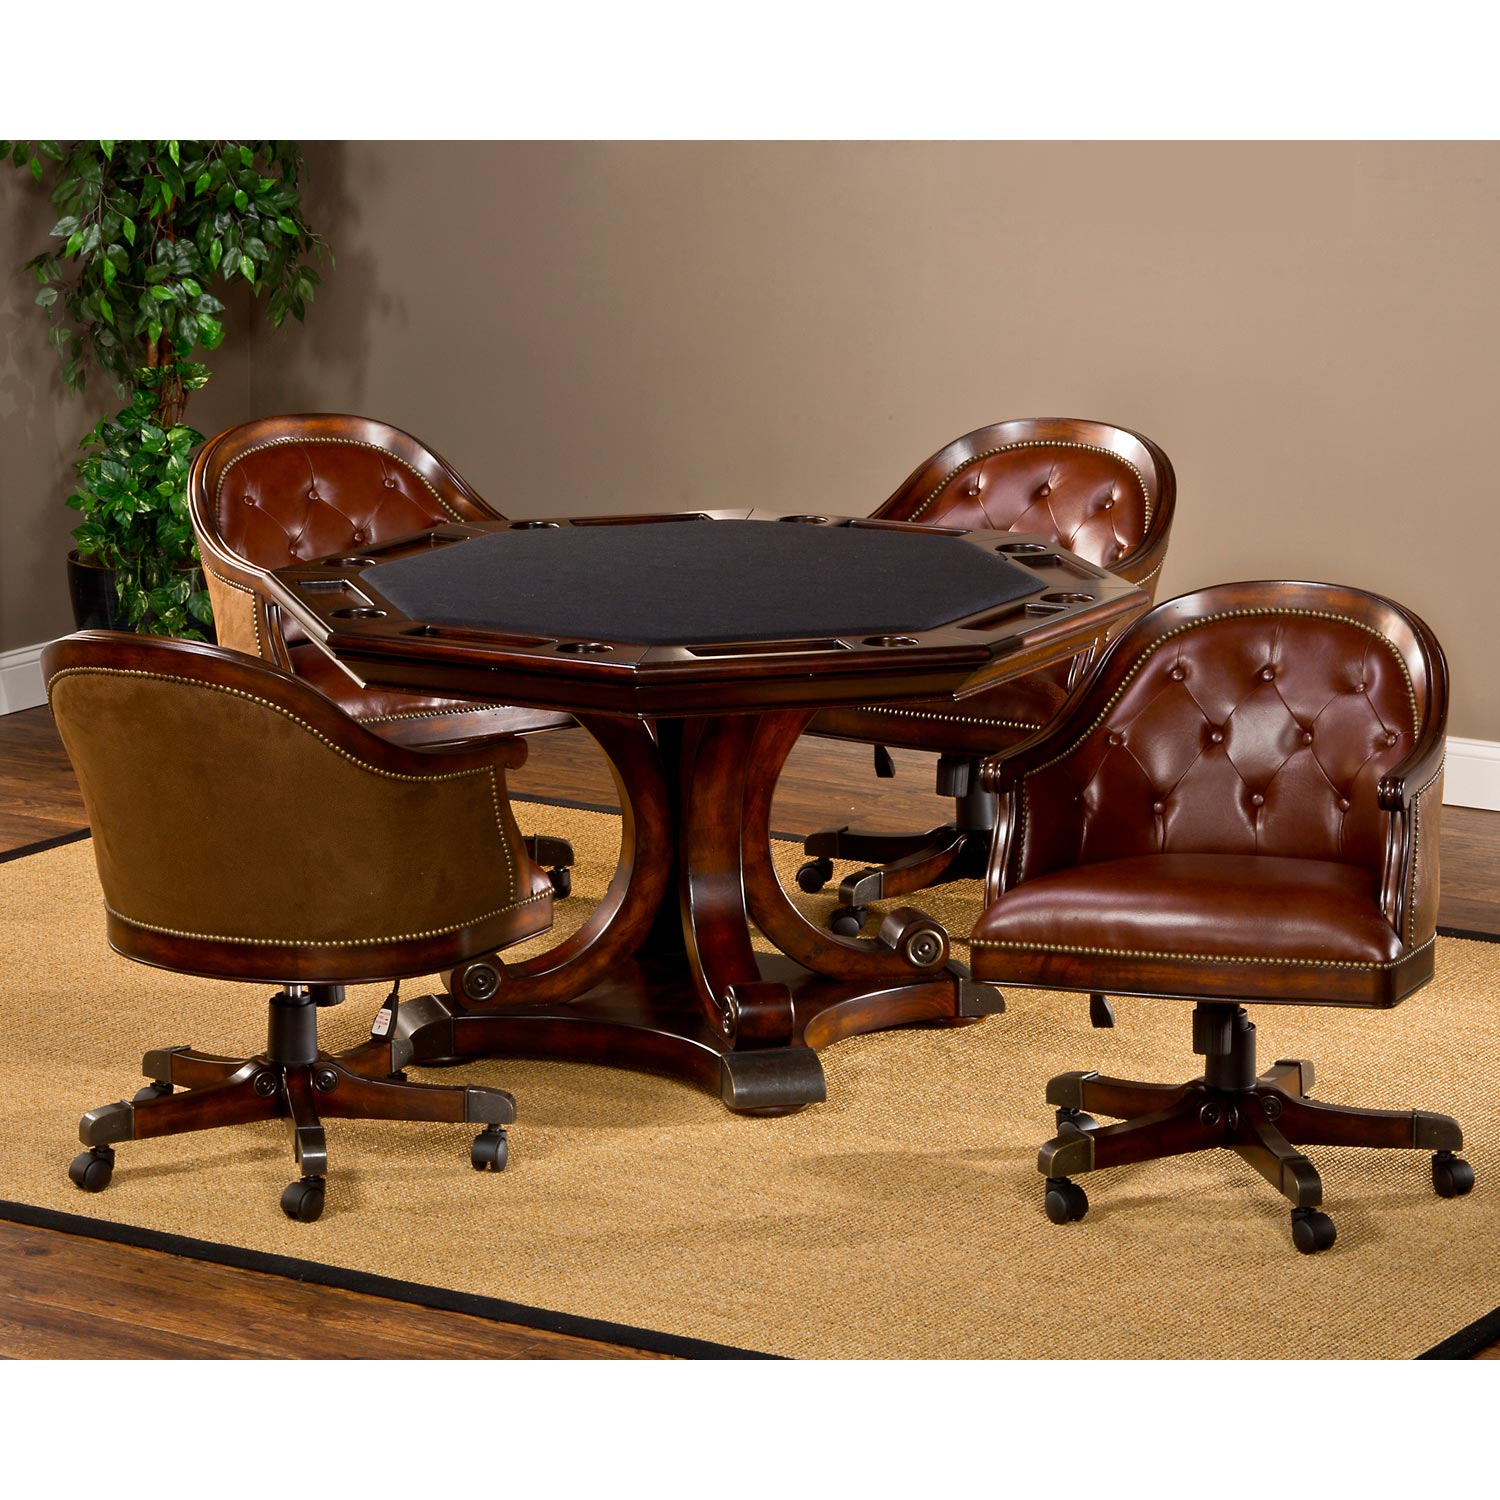 Brown Leather Chairs, Rich Cherry